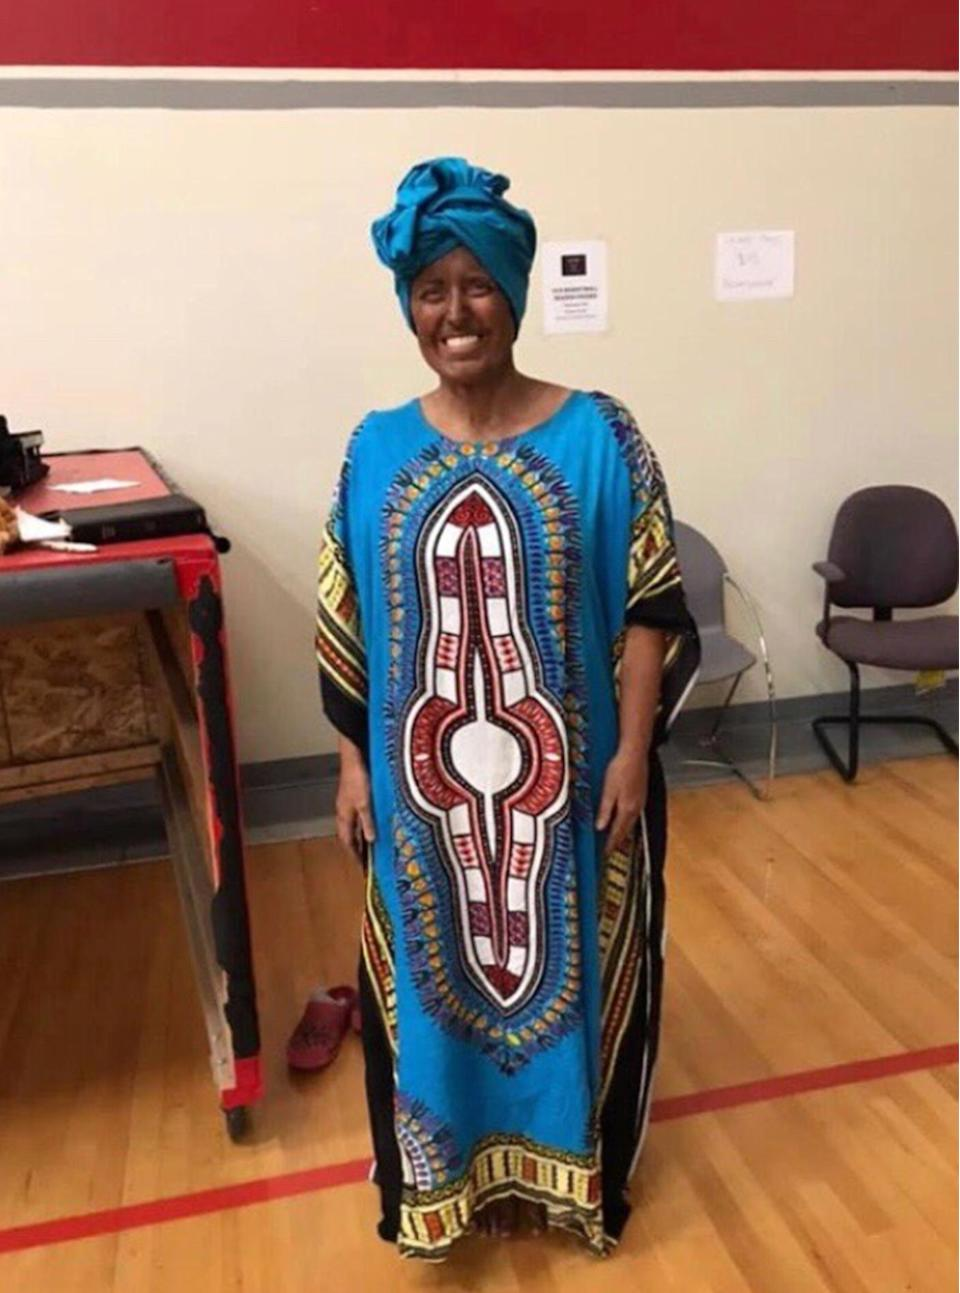 Blackface scandal in California: The teacher darkened her skin while teaching students about the missionary David Livingston who visited Africa in the late 19th century.